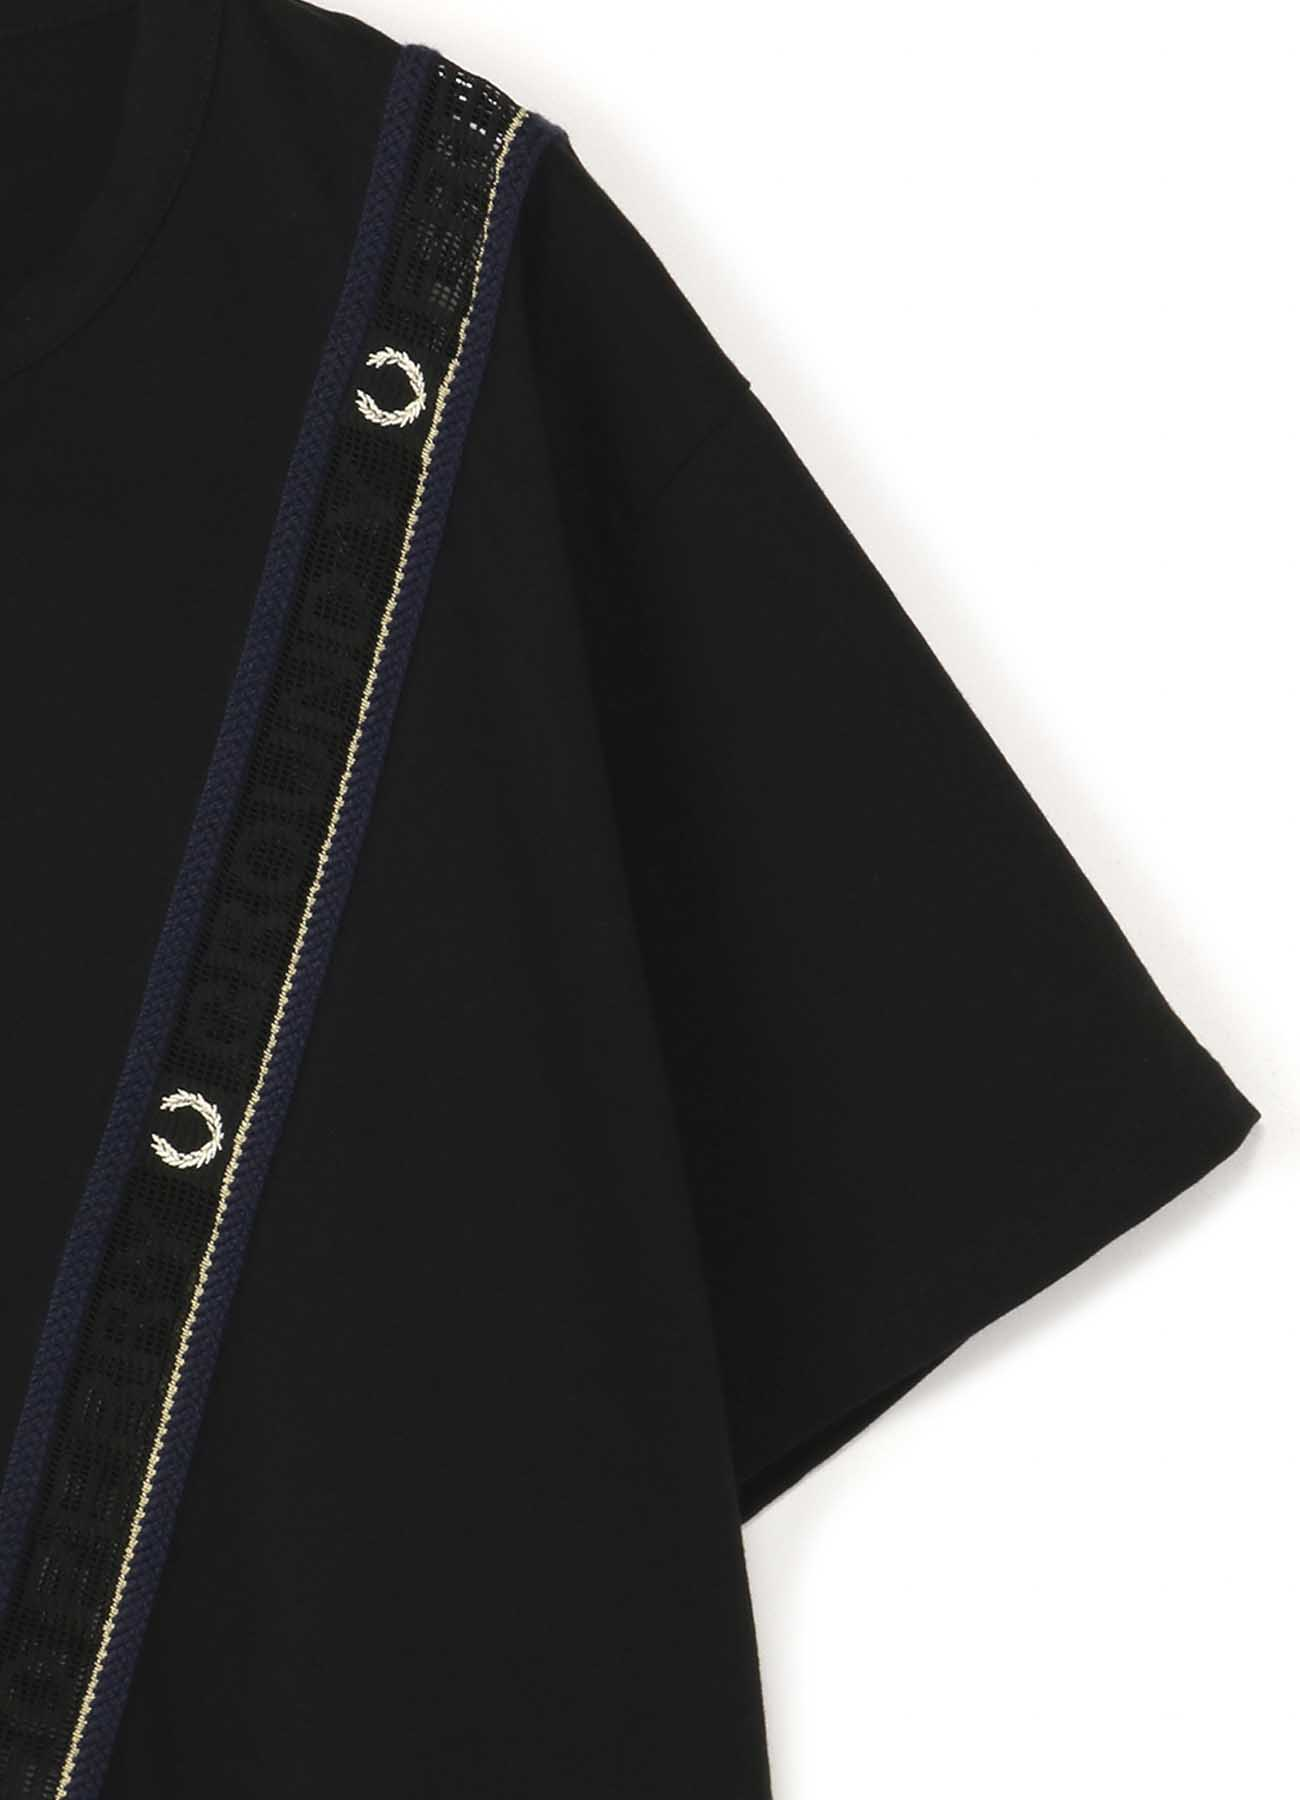 FRED PERRY collaboration 30 /Cotton Plain Big